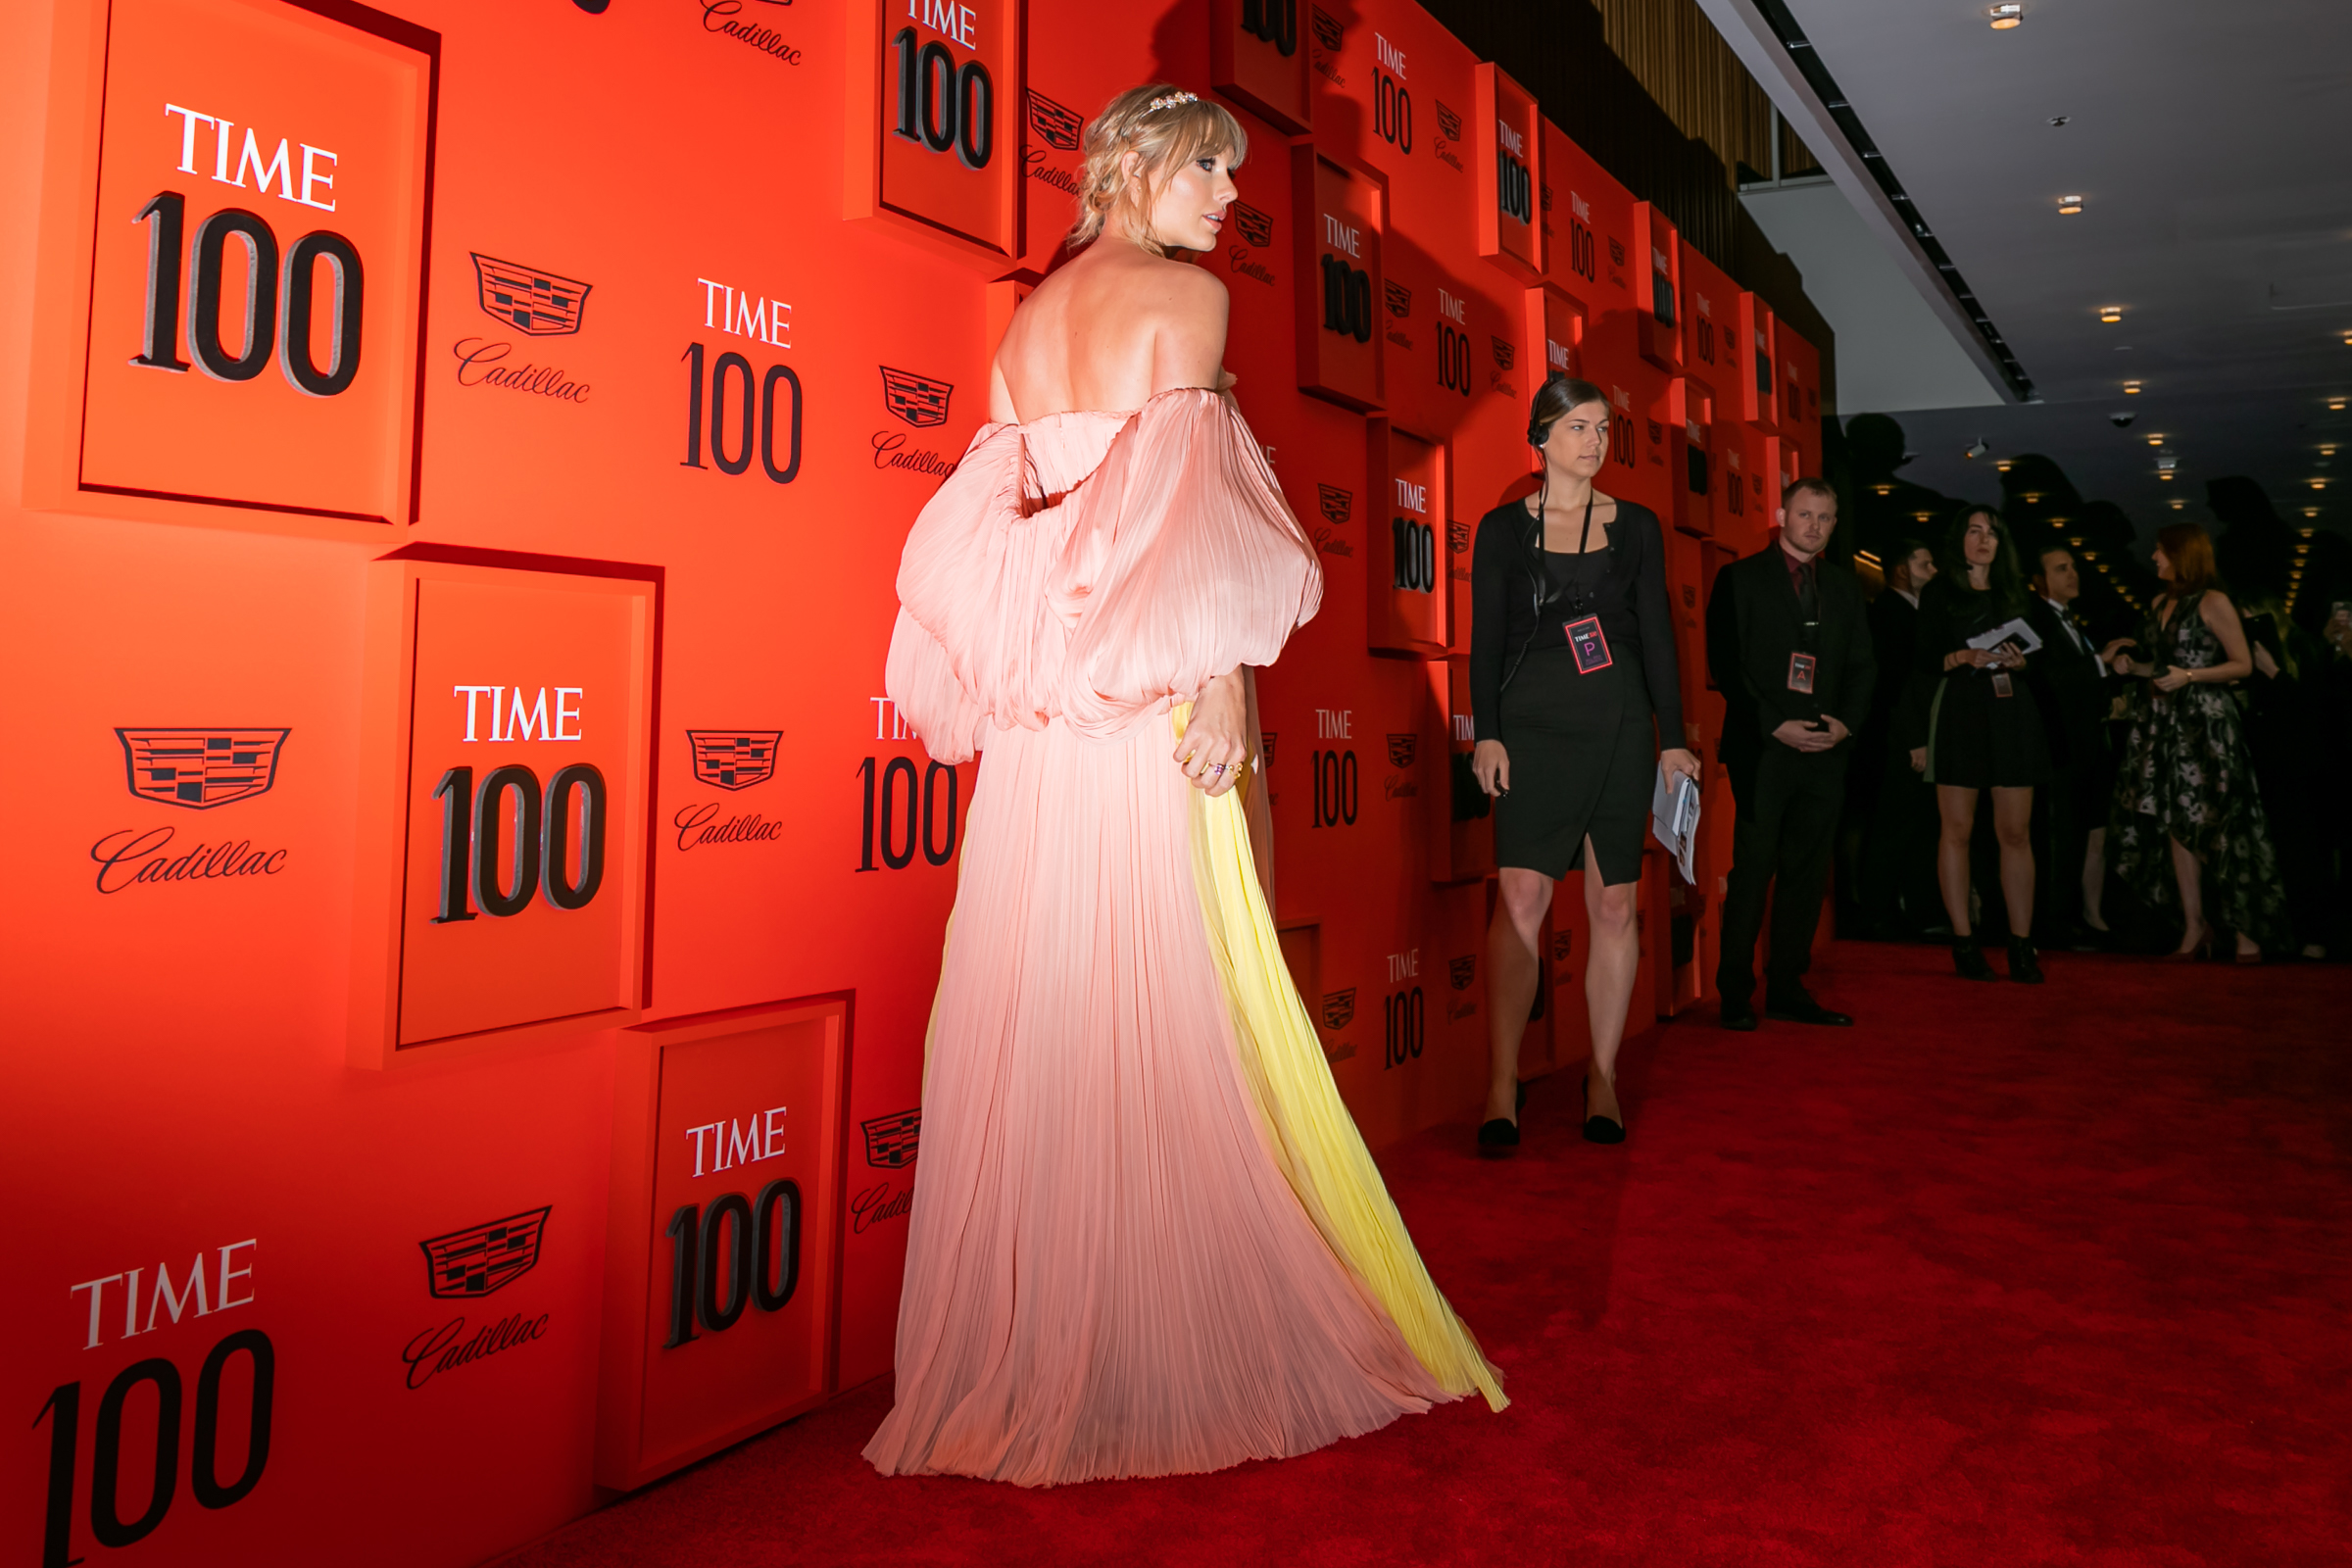 Taylor Swift at the Time 100 Gala at Jazz at Lincoln Center in New York City on April 23, 2019.